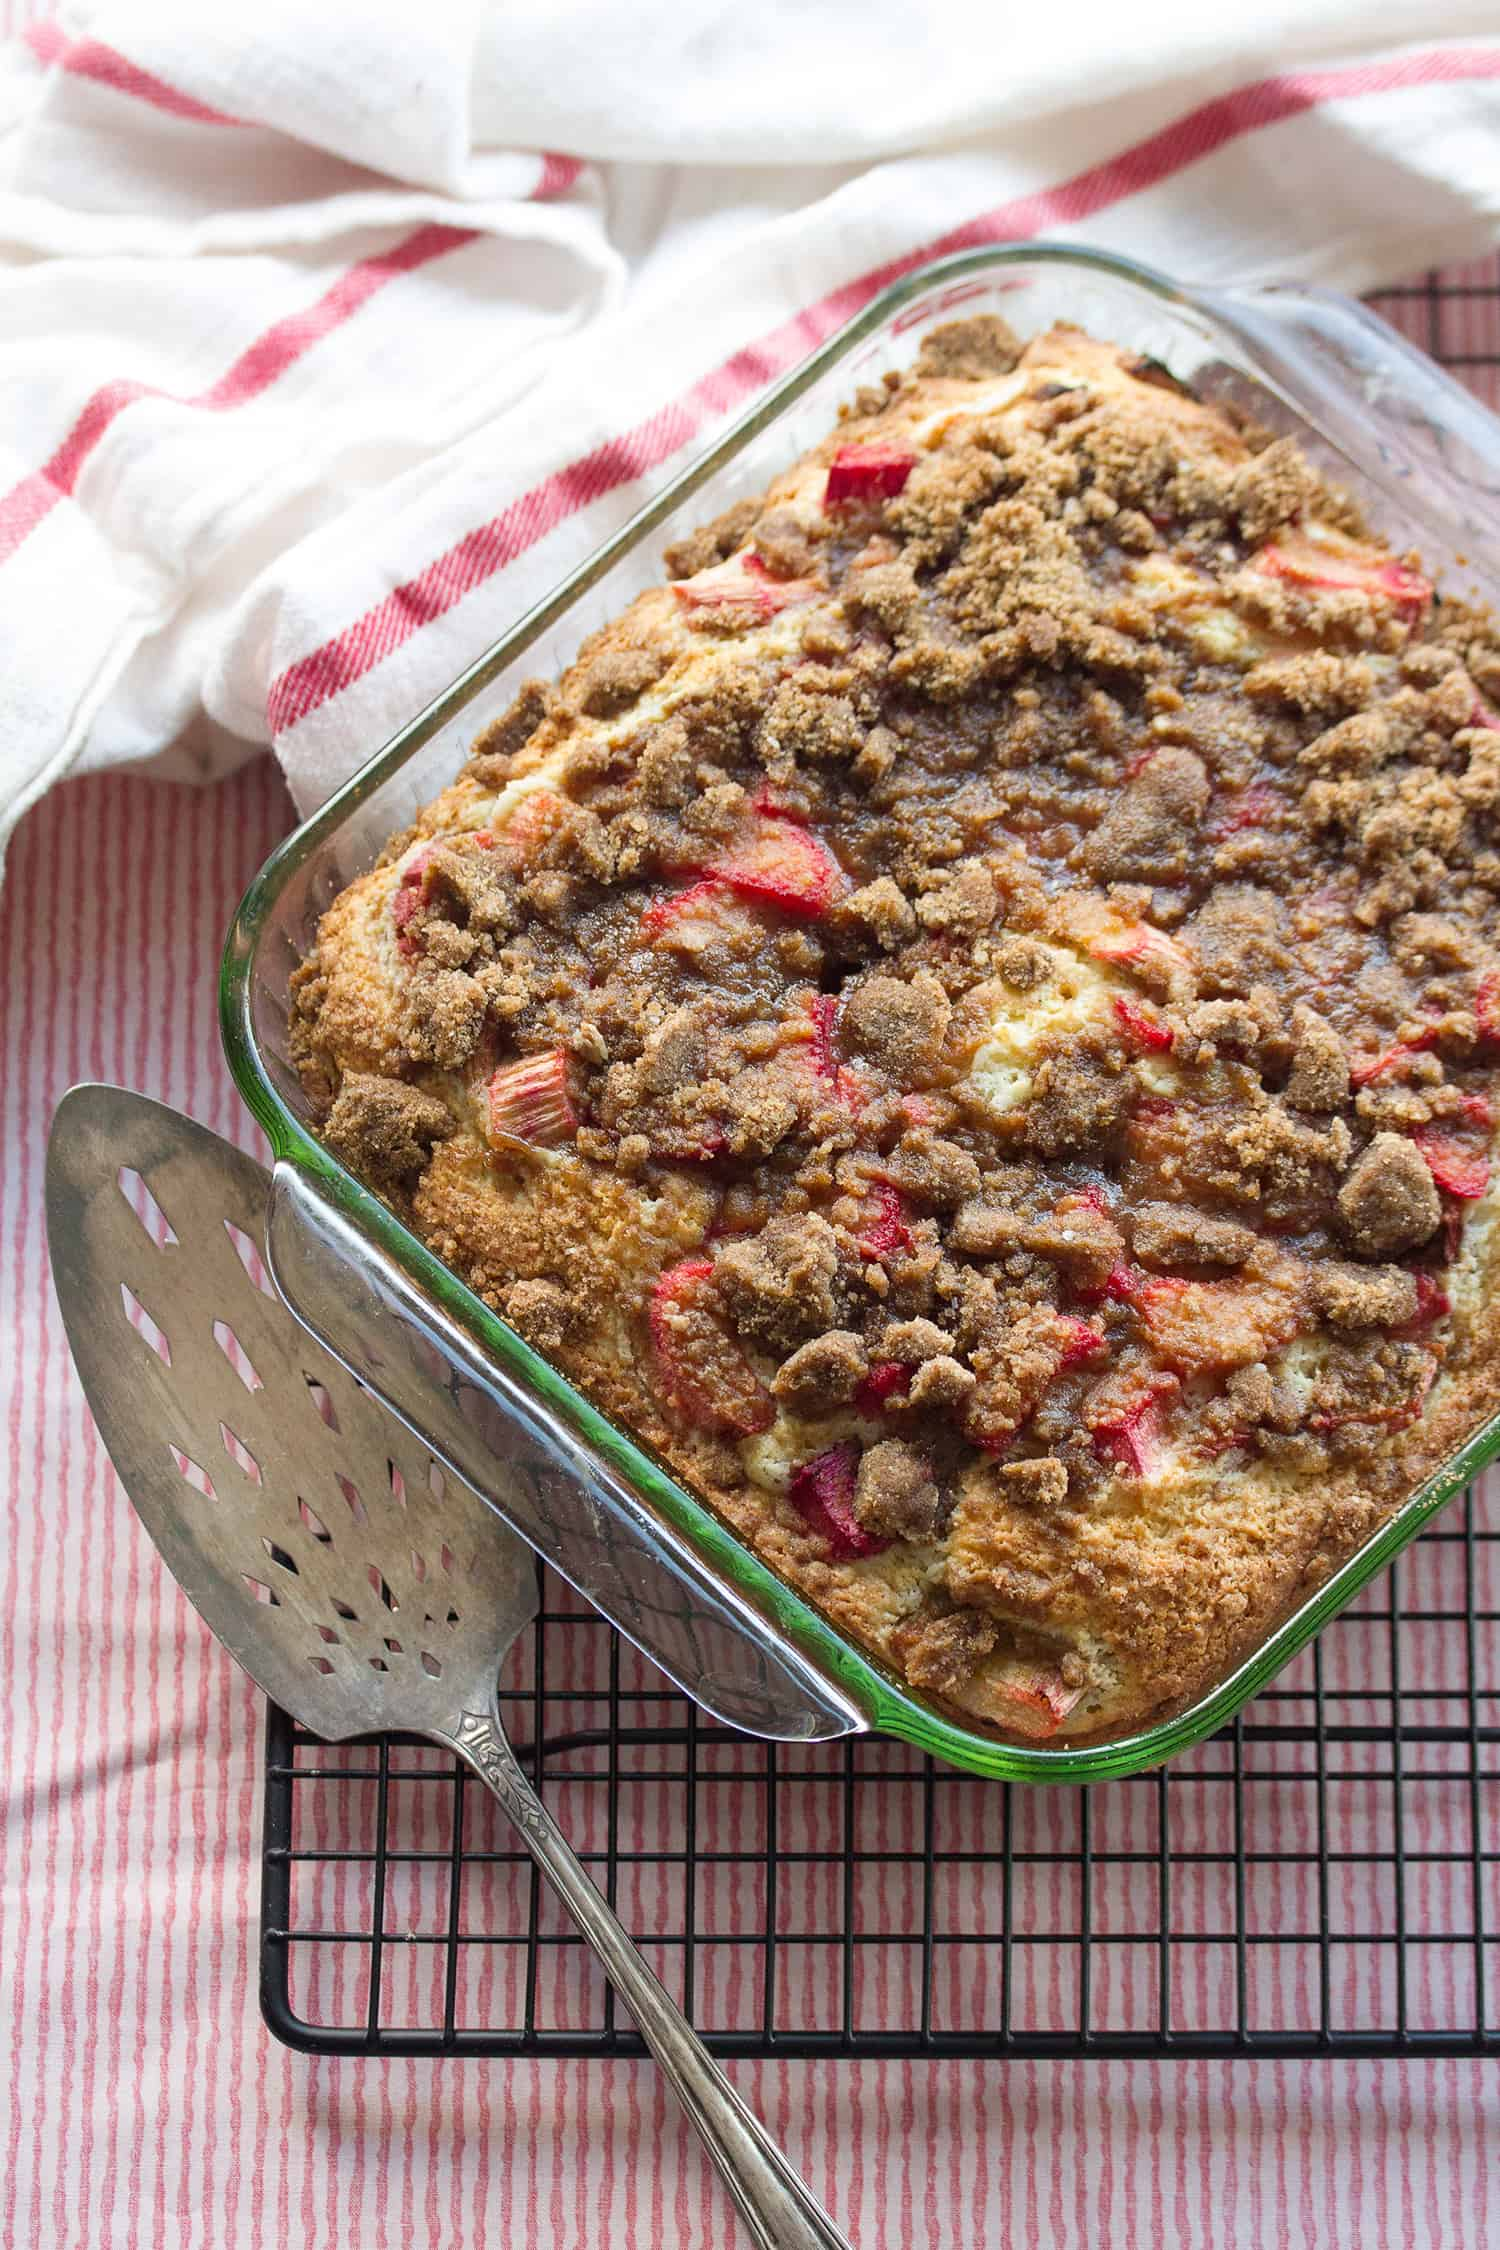 Simply the Zest: Lemon Rhubarb Coffee Cake